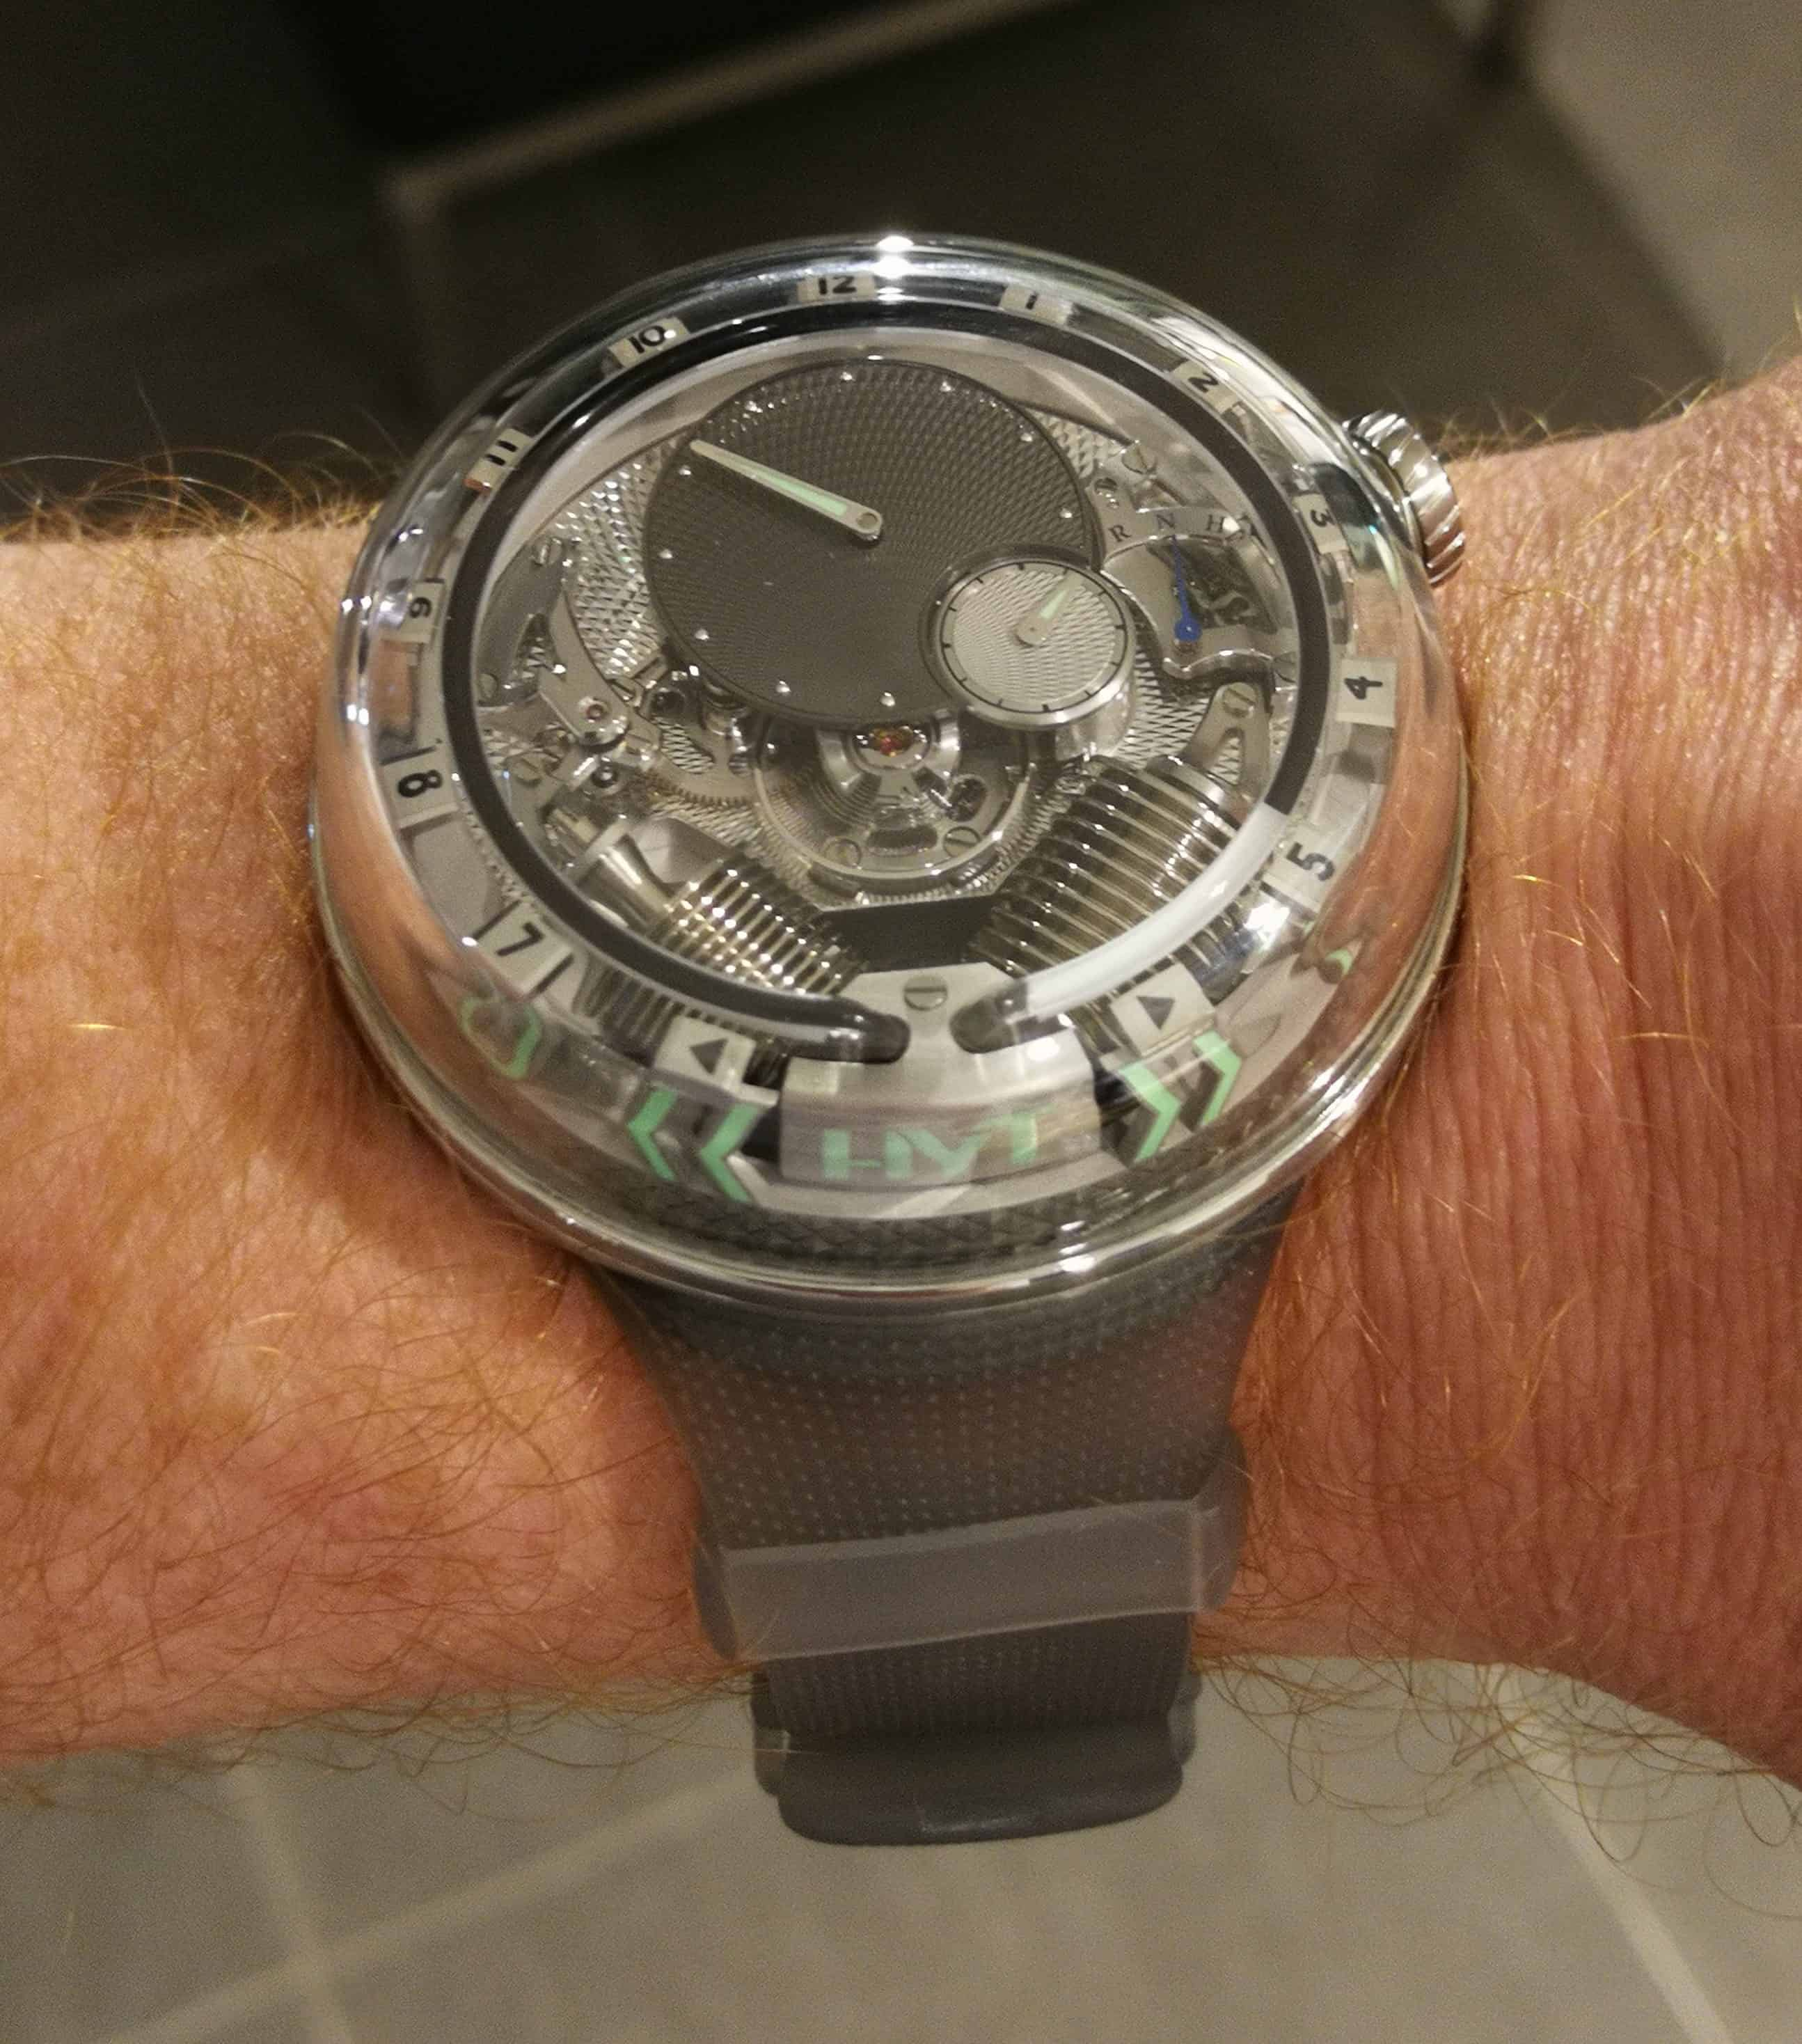 HYT H2O Time is Fluid on the Wrist